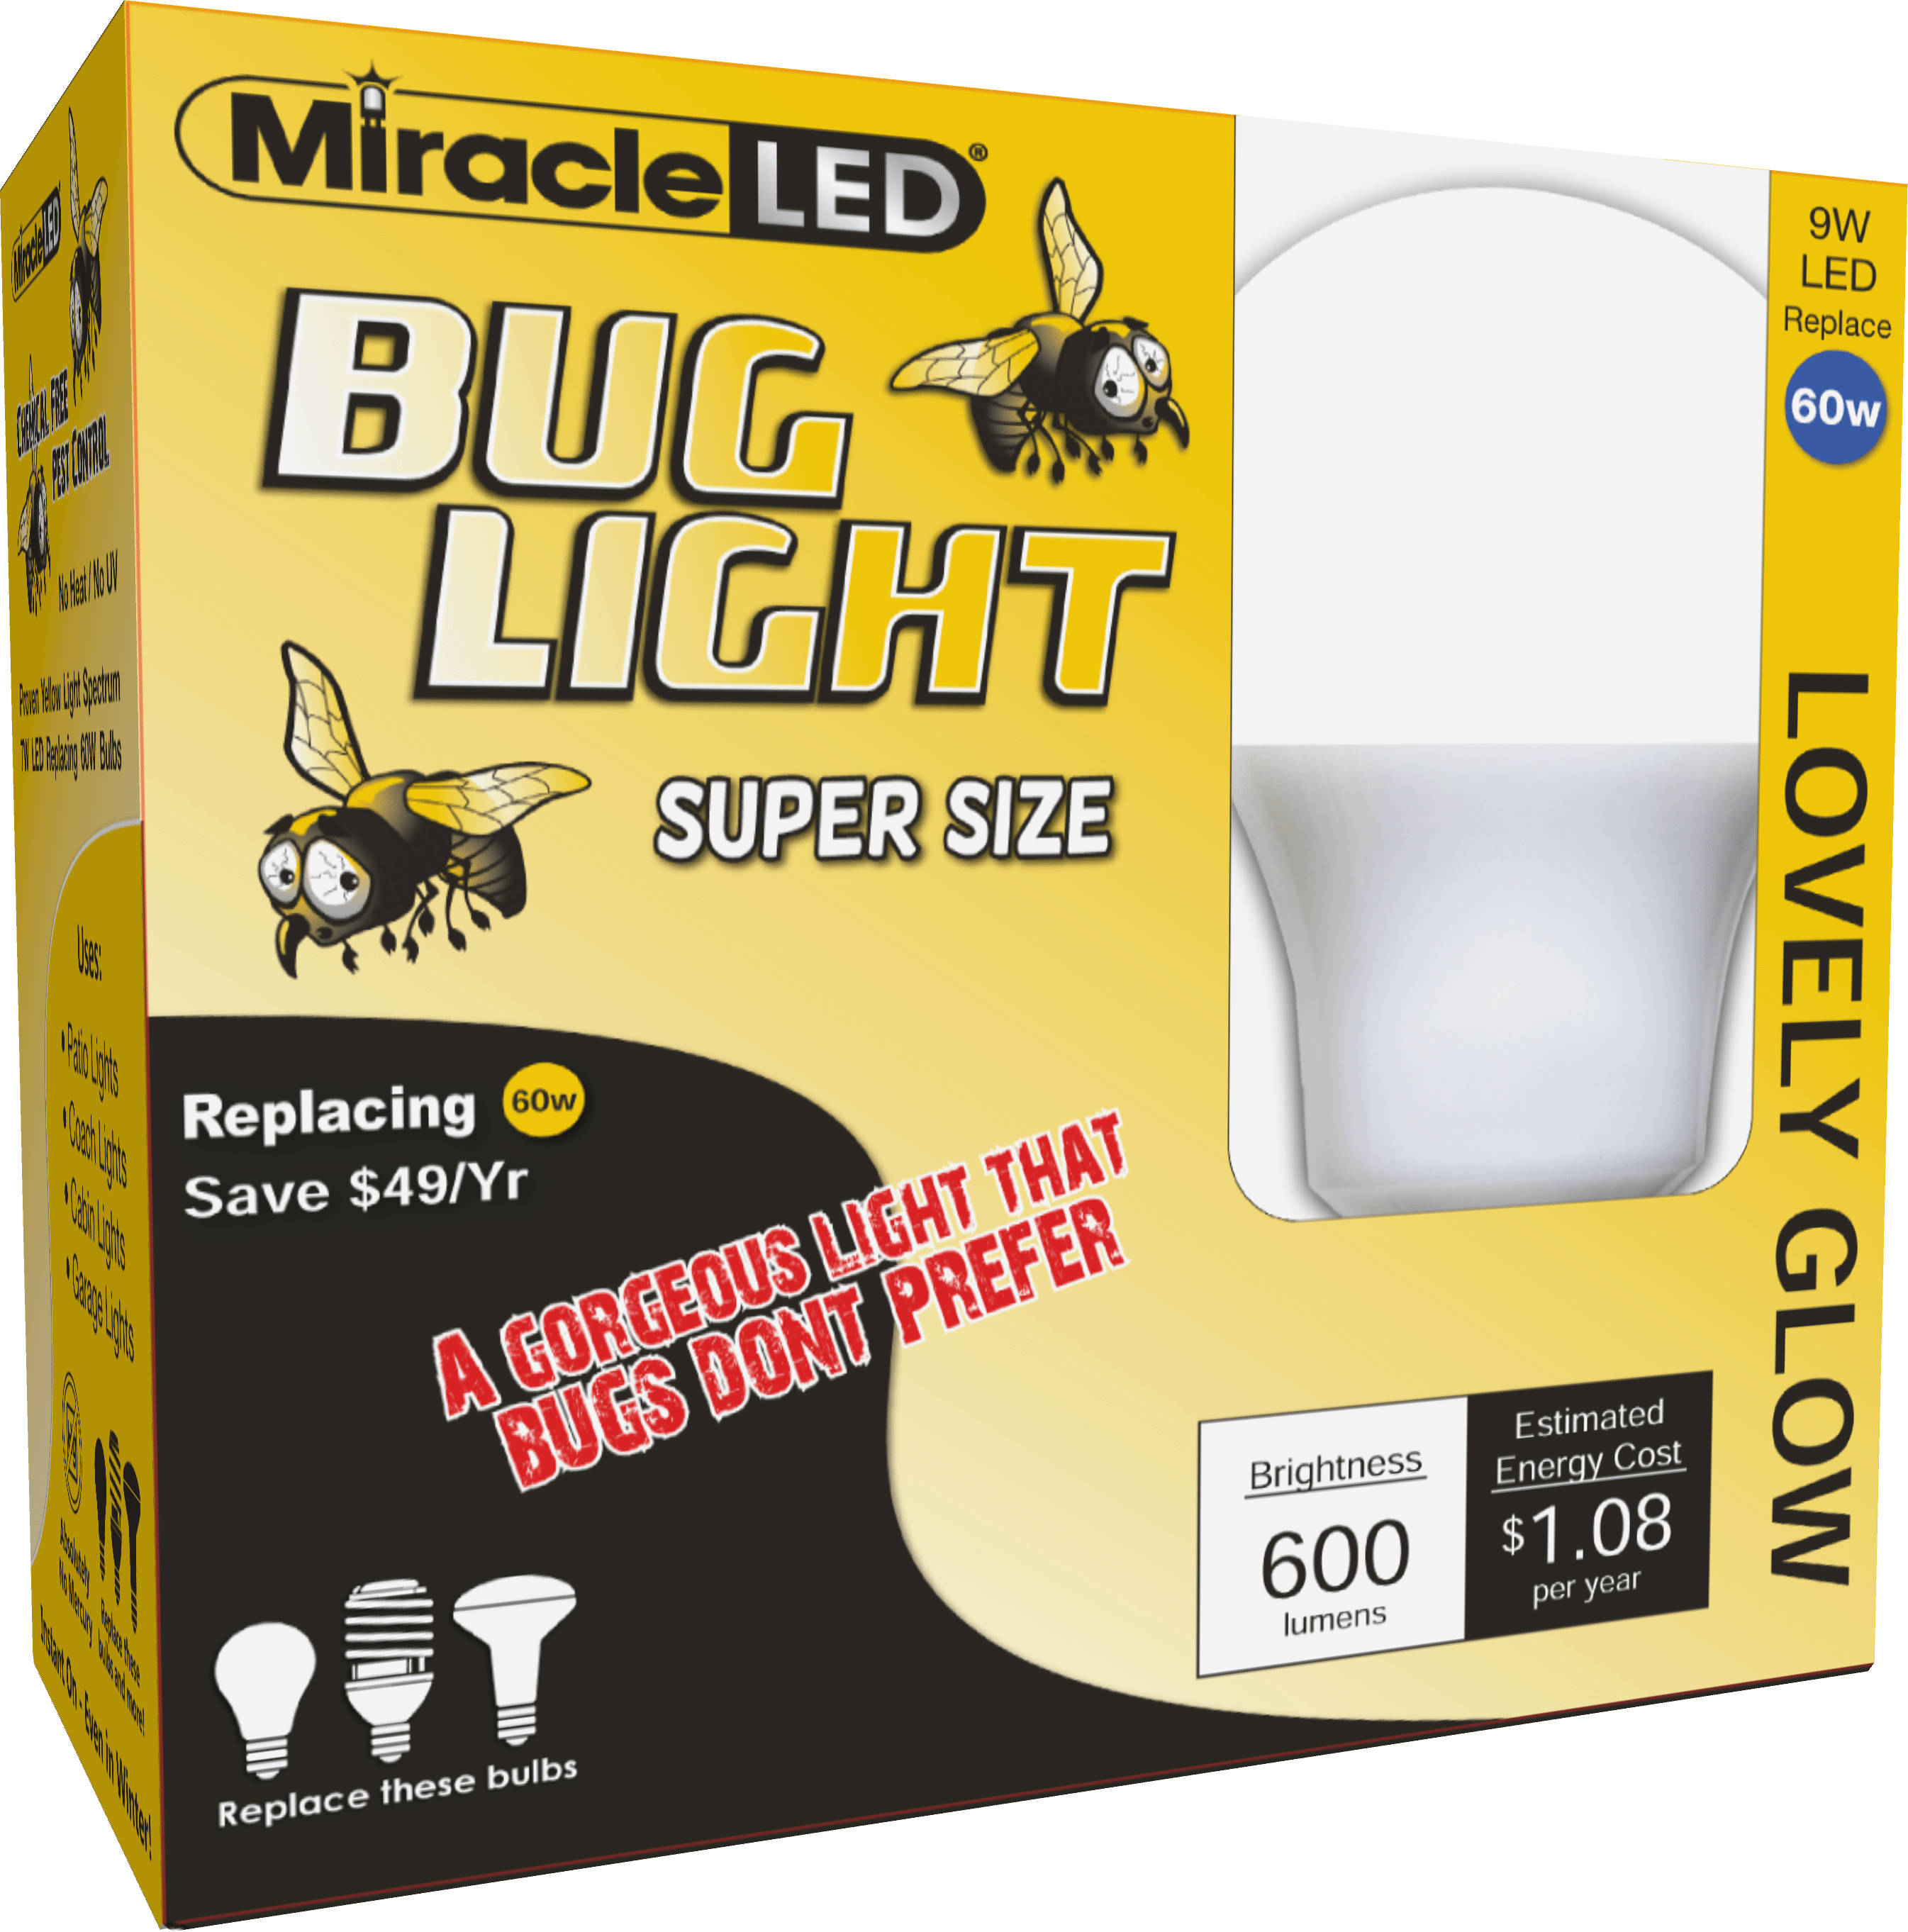 Miracle LED Lovely Glow Amber LED Outdoor Bug Light Replace 60W 2-Pack (Walmart)